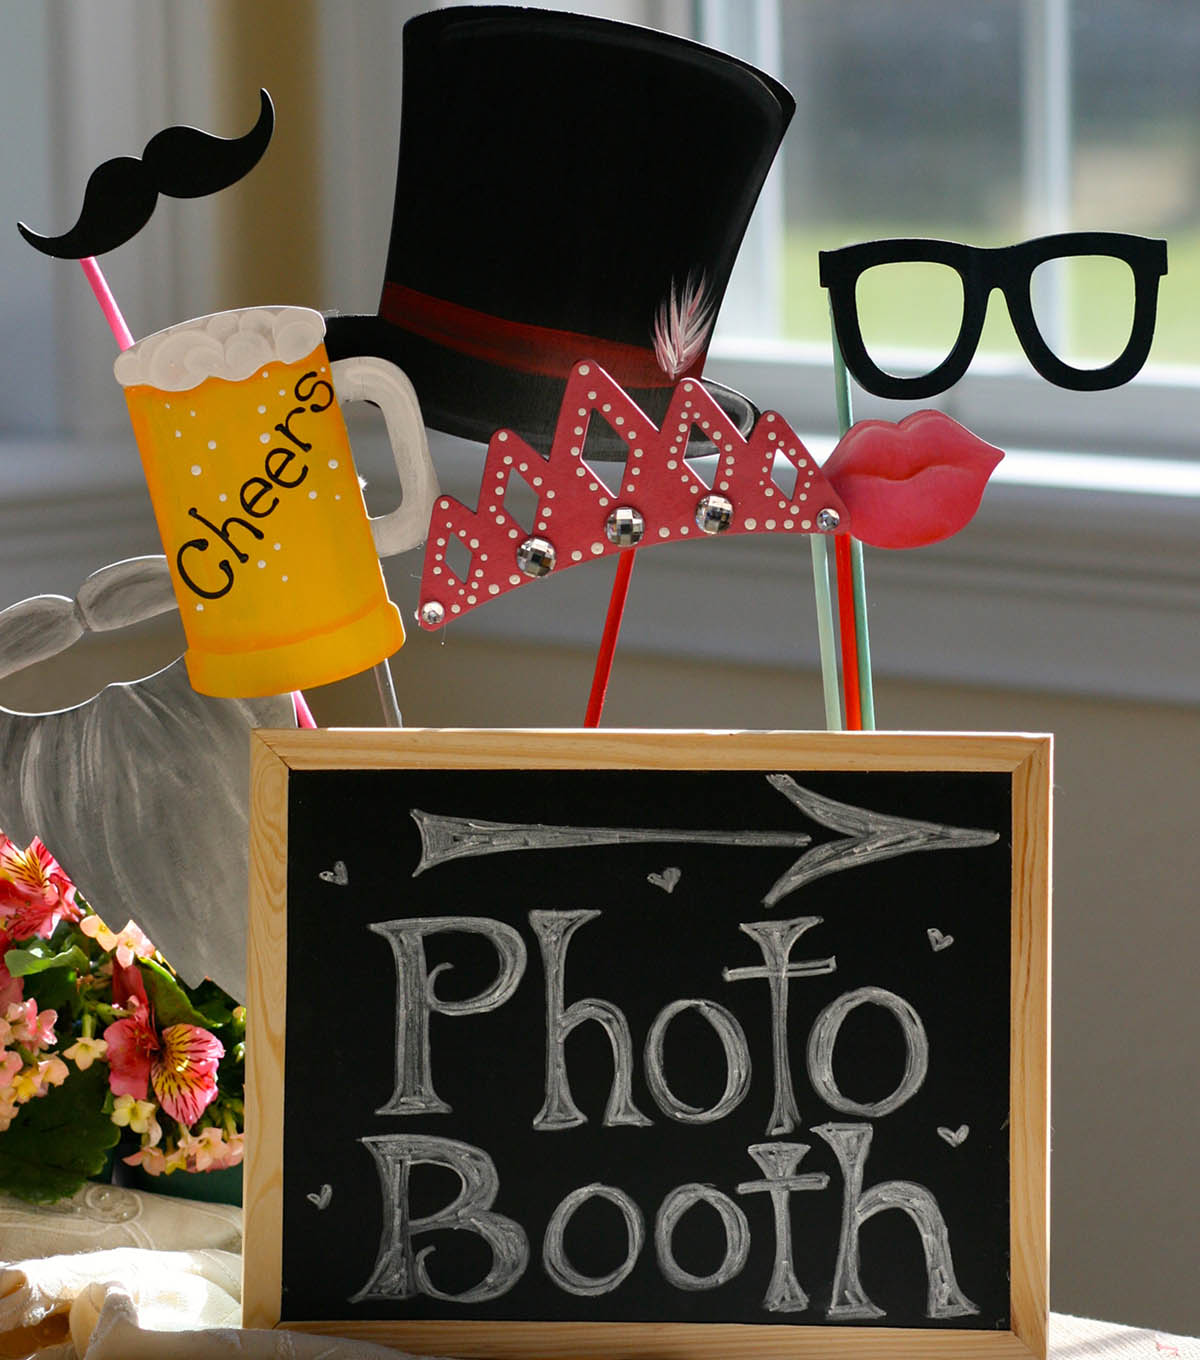 """Photo Booth"" Sign and Photo Props"